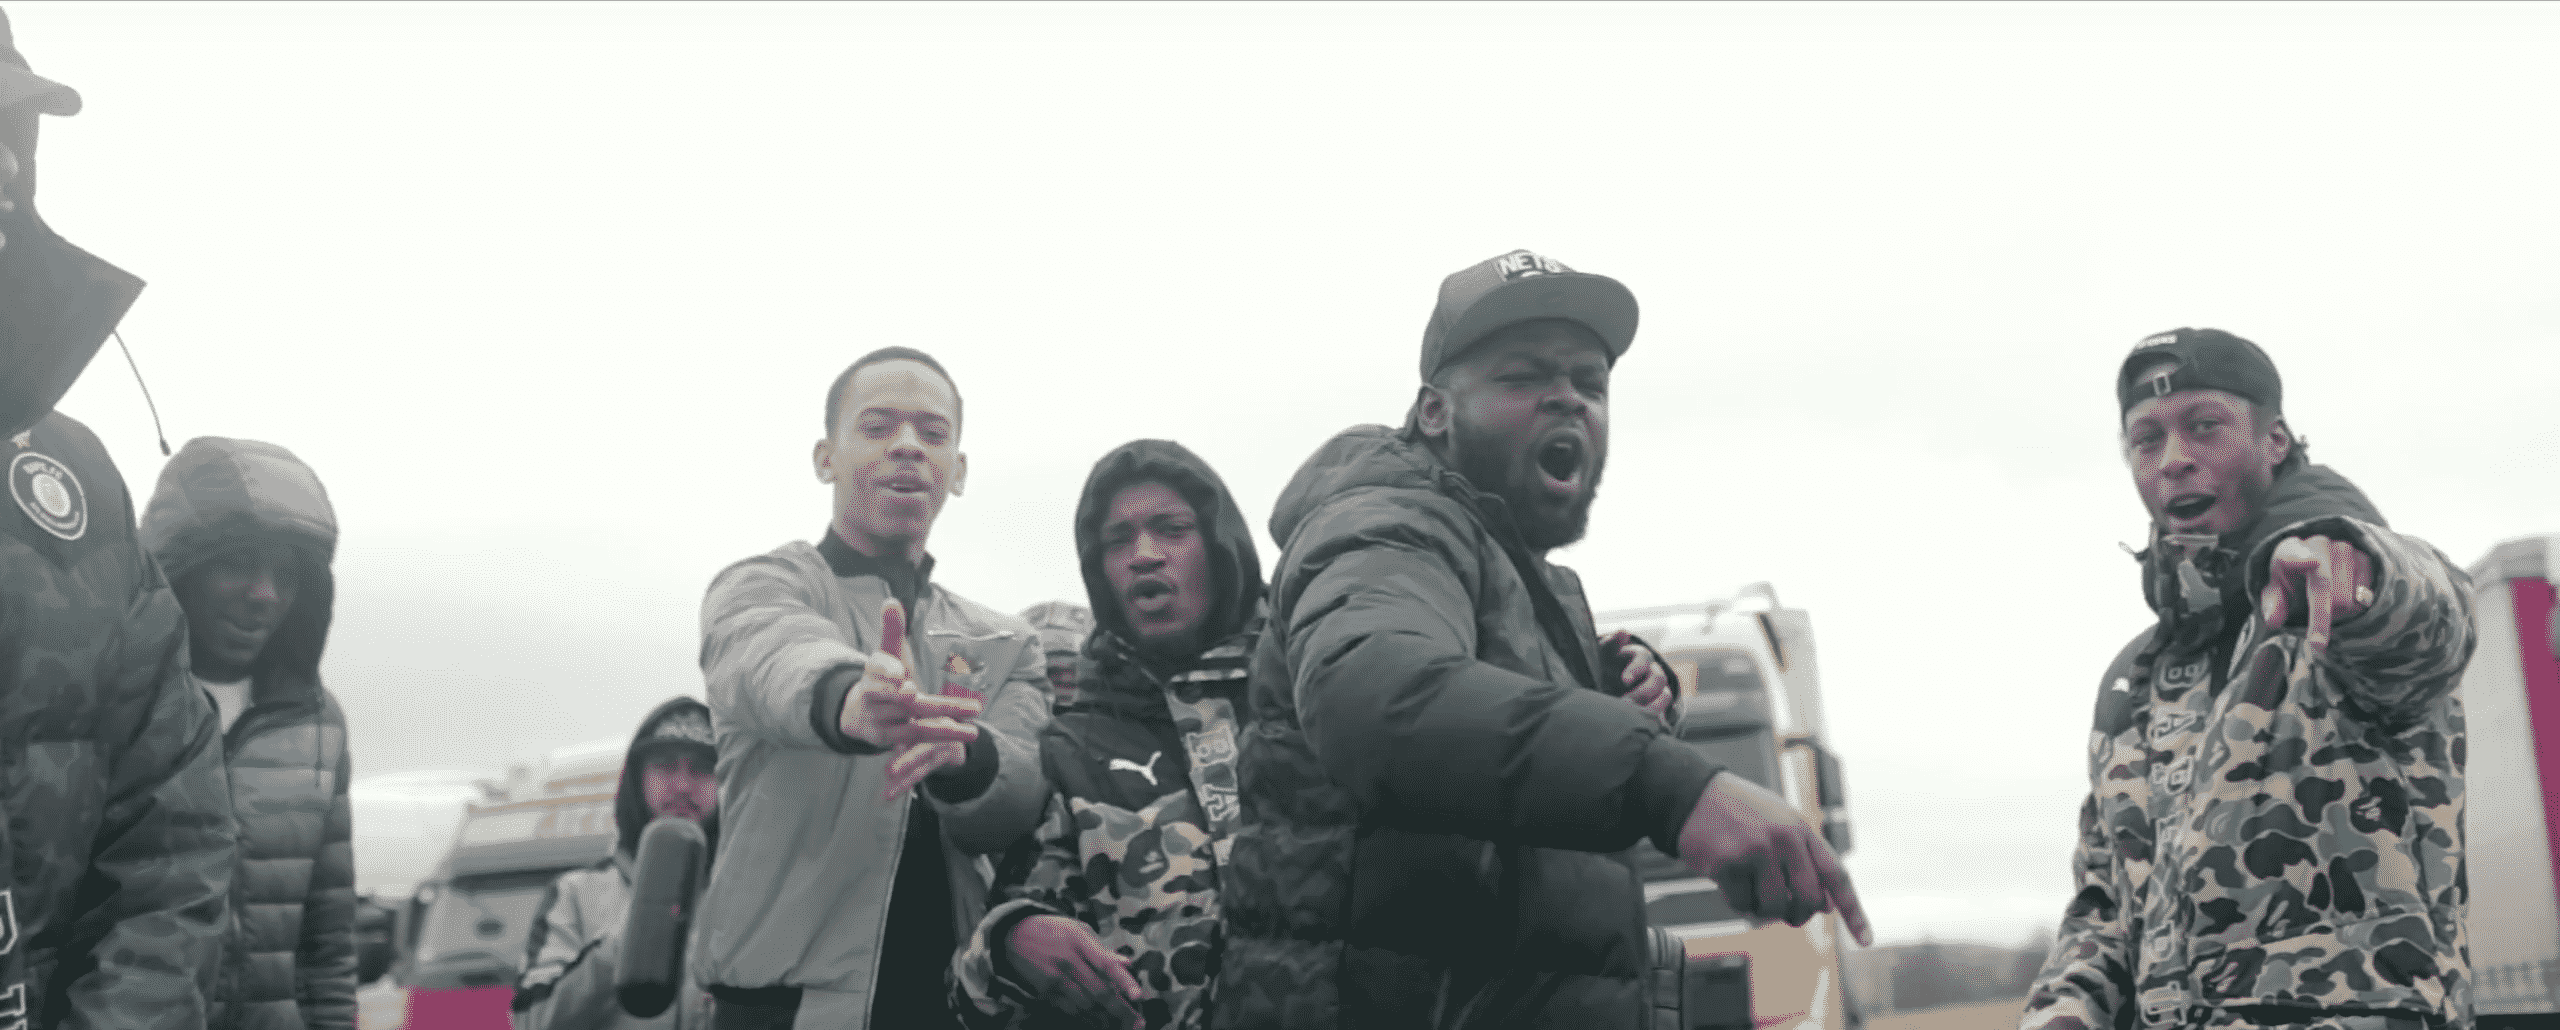 image section boyz clip section music 2